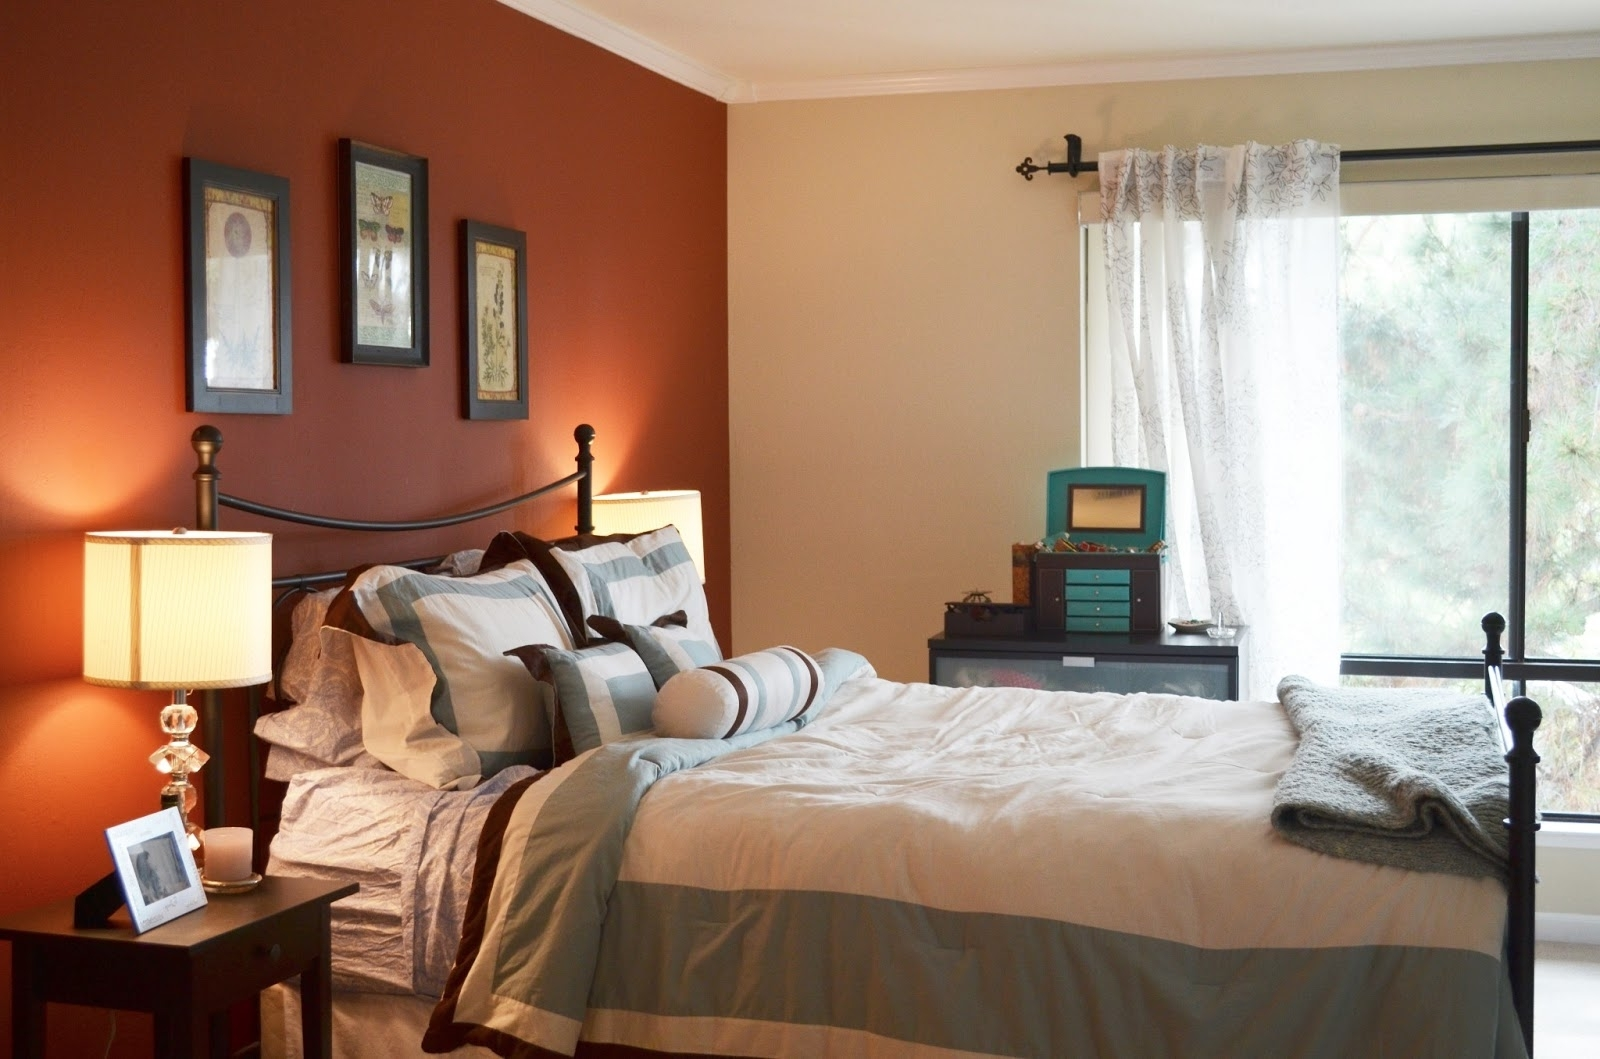 Well Liked Charming Bedroom Design With Orange Accents Wall Painted And With Regard To Wall Accents With Paint (View 15 of 15)